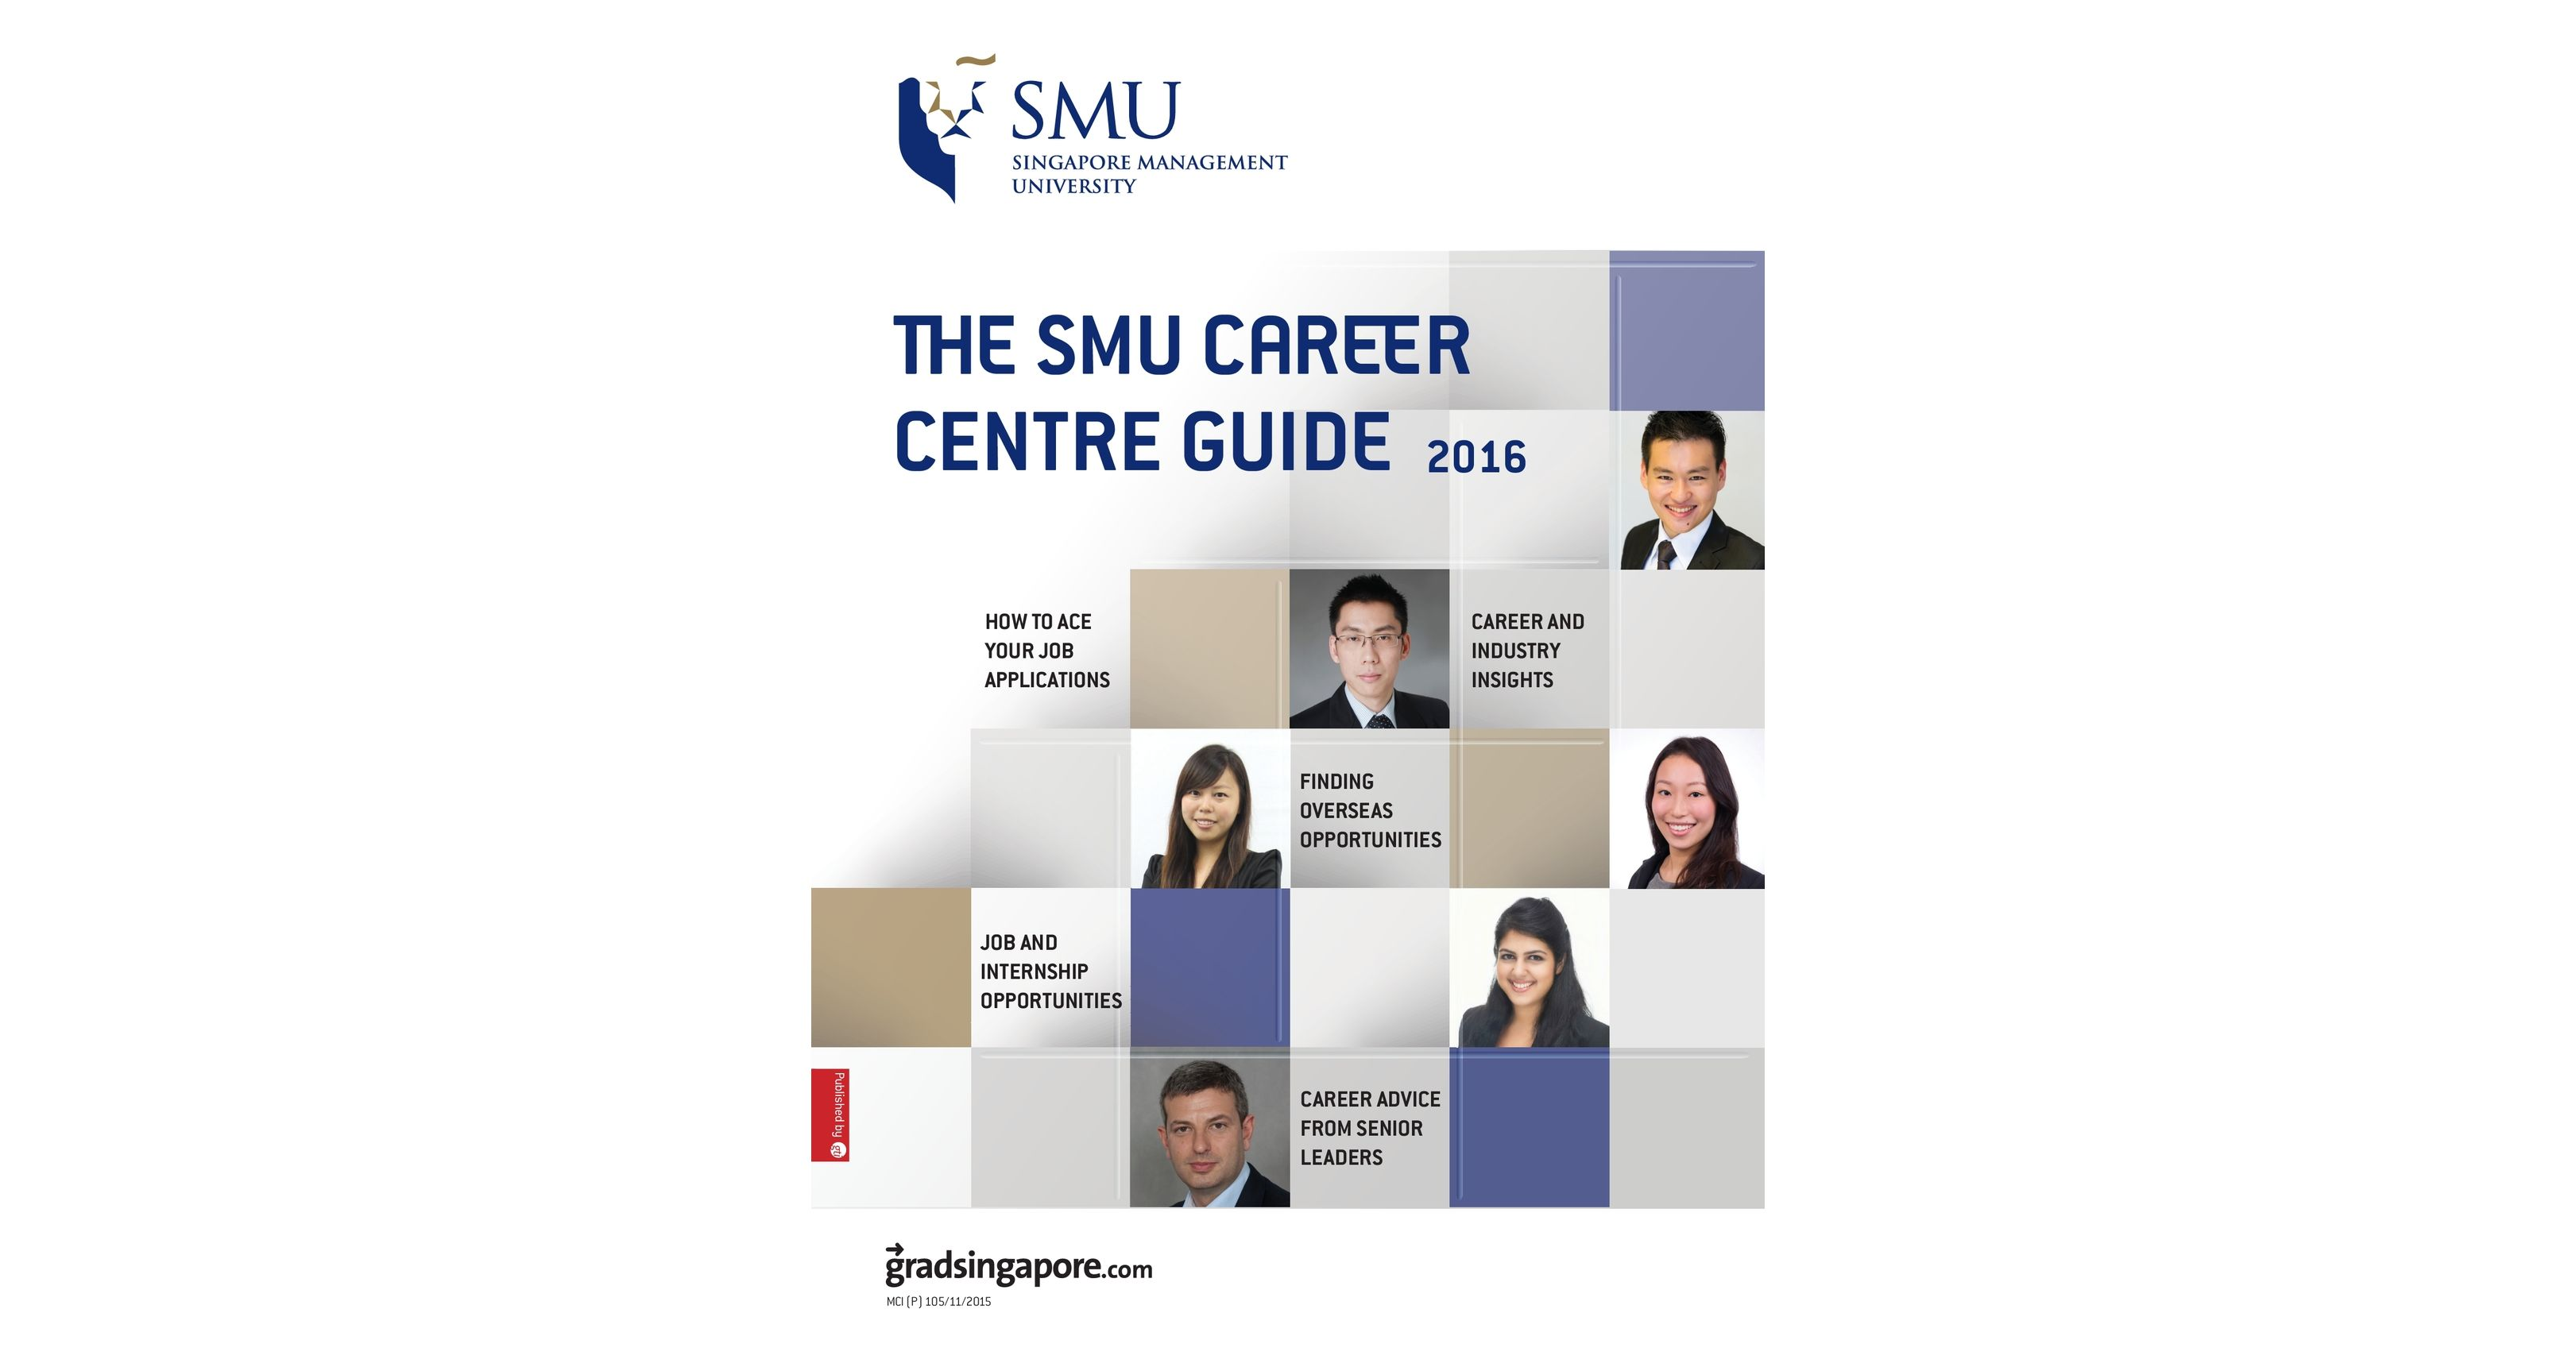 smu career centre guide 2016